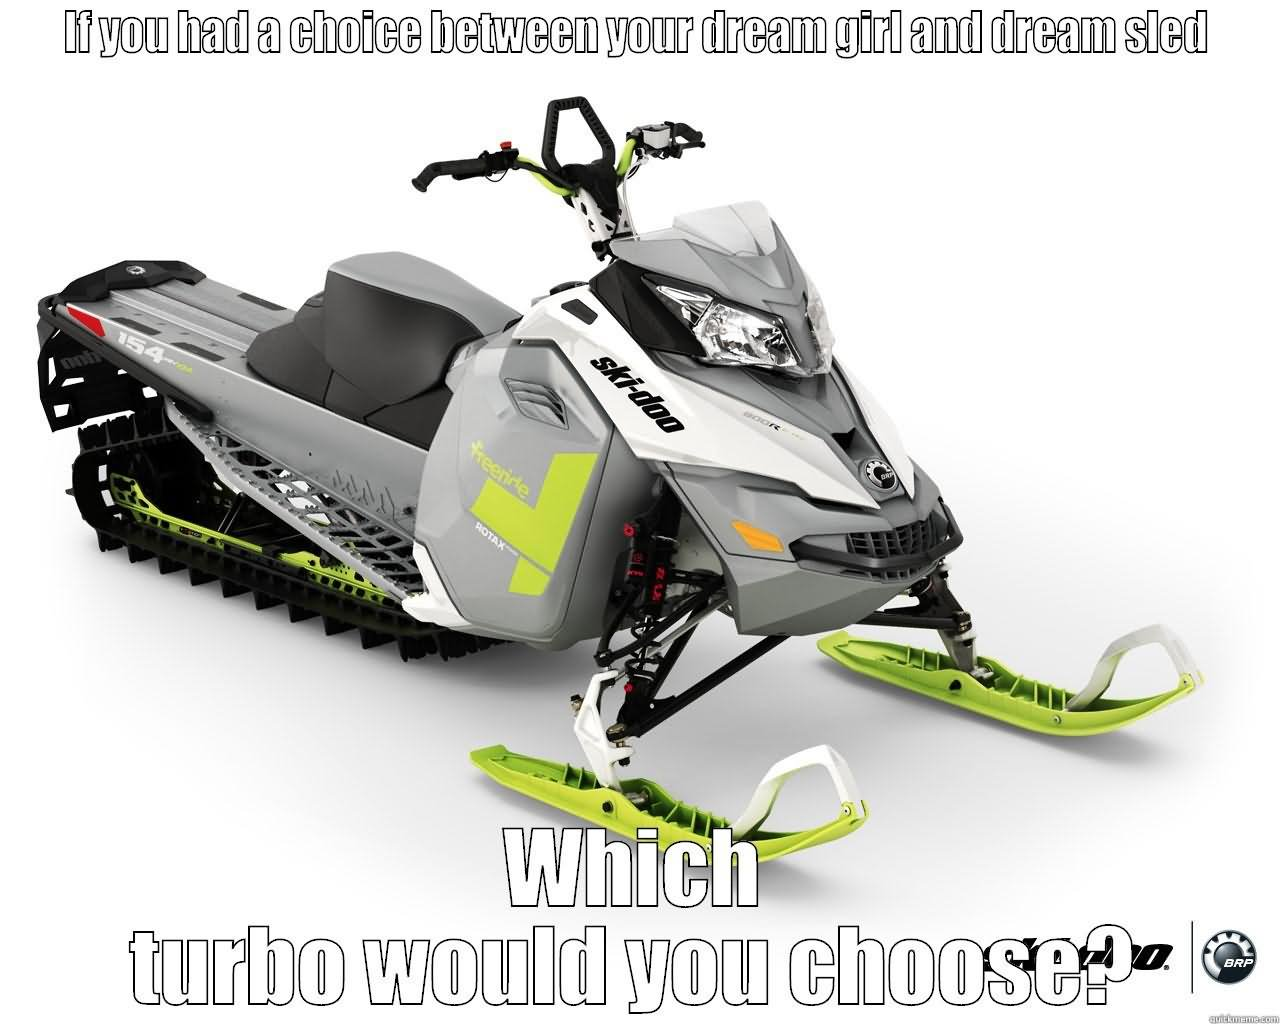 If You Had A Choice Between Your Dream Girl And Sled Funny Sled Meme Image 25 most funniest sled meme pictures on the internet